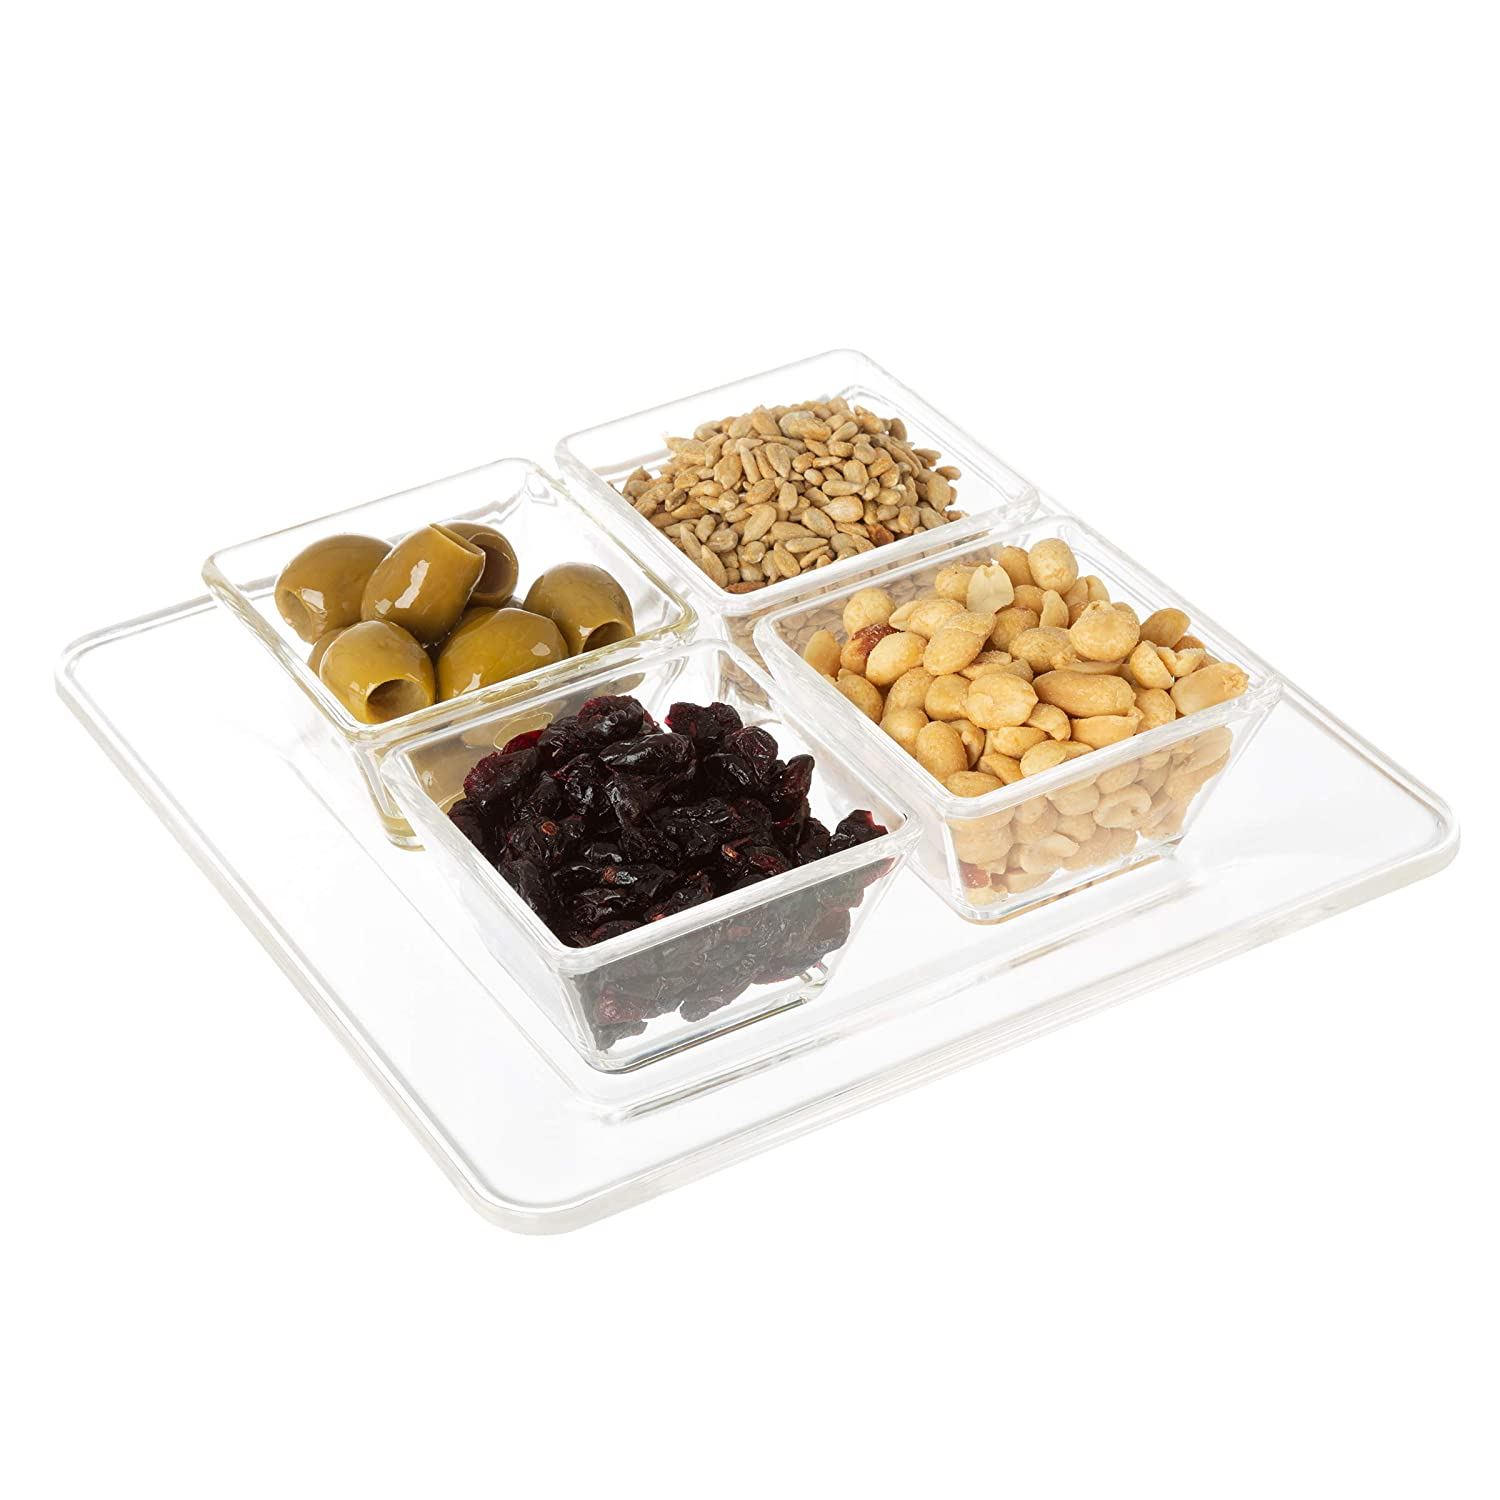 Garnishes and More and More, Classic Cuisine 82-KIT1099 Serving Tray with 2 Dishes Condiment Platter with Separate Bowls for Appetizers Veggies Chips Snacks Dips